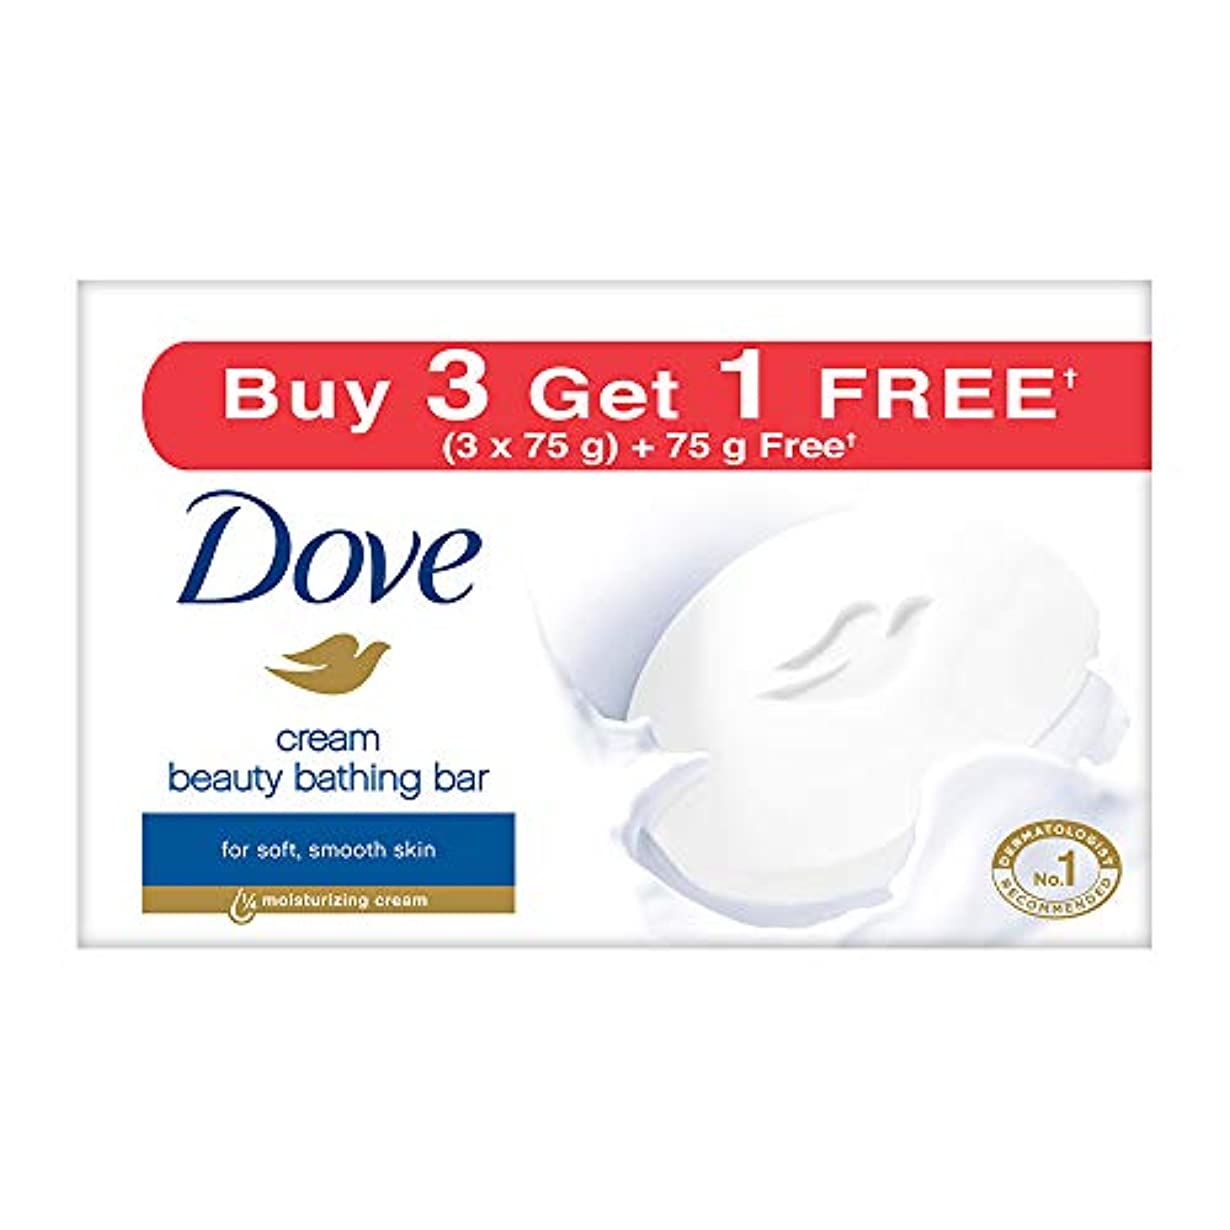 制裁アトミック横向きDove Cream Beauty Bathing Bar, 4x75g